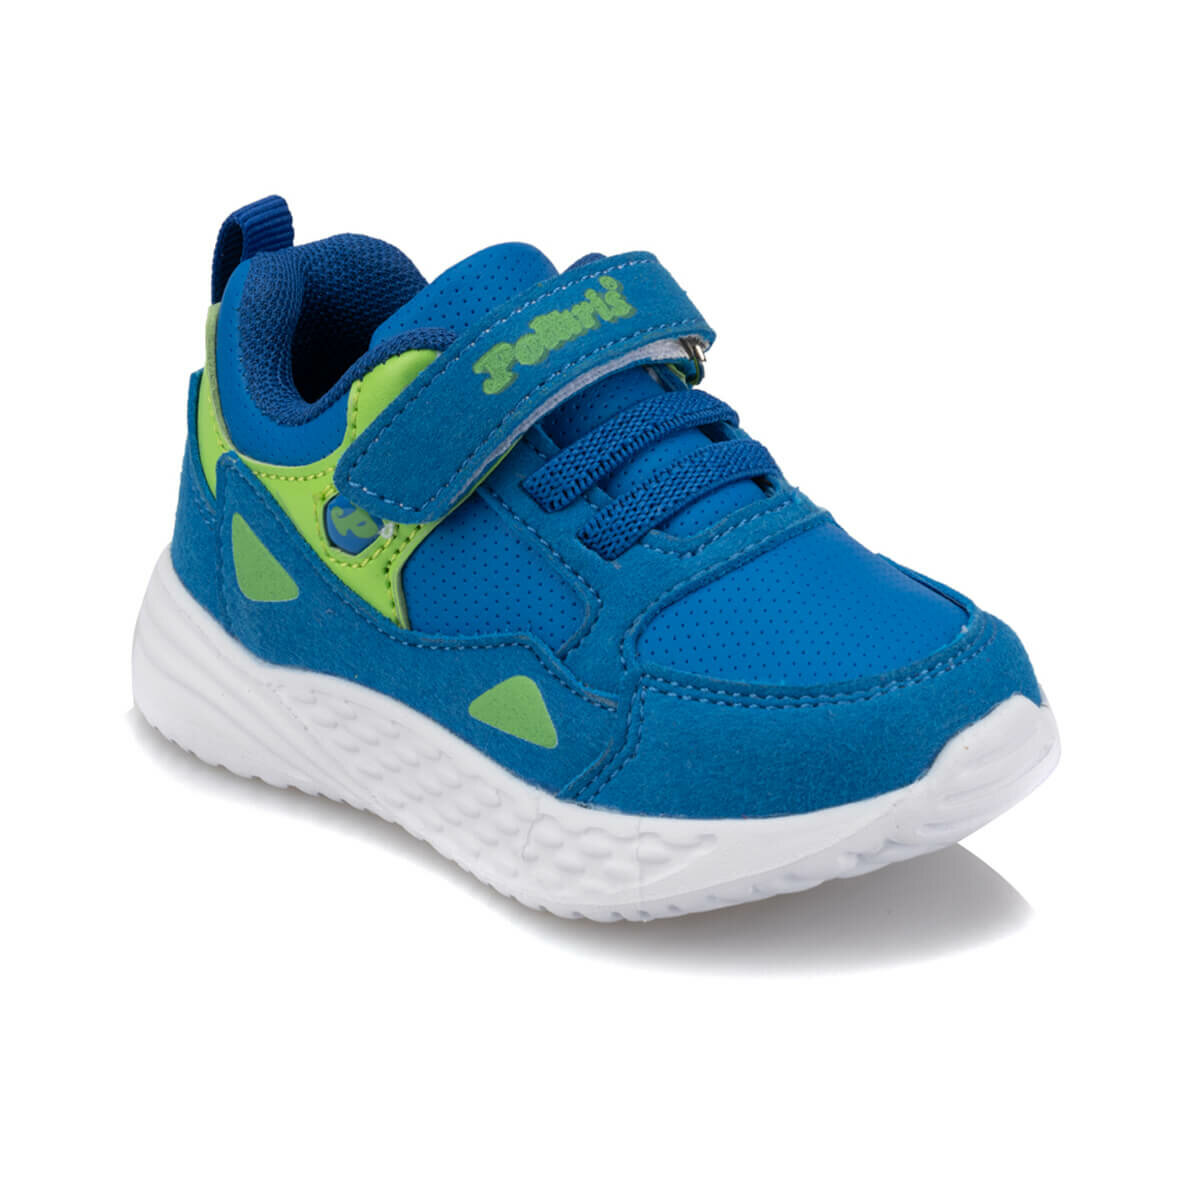 FLO 92.511715.B Saks Male Child Sports Shoes Polaris